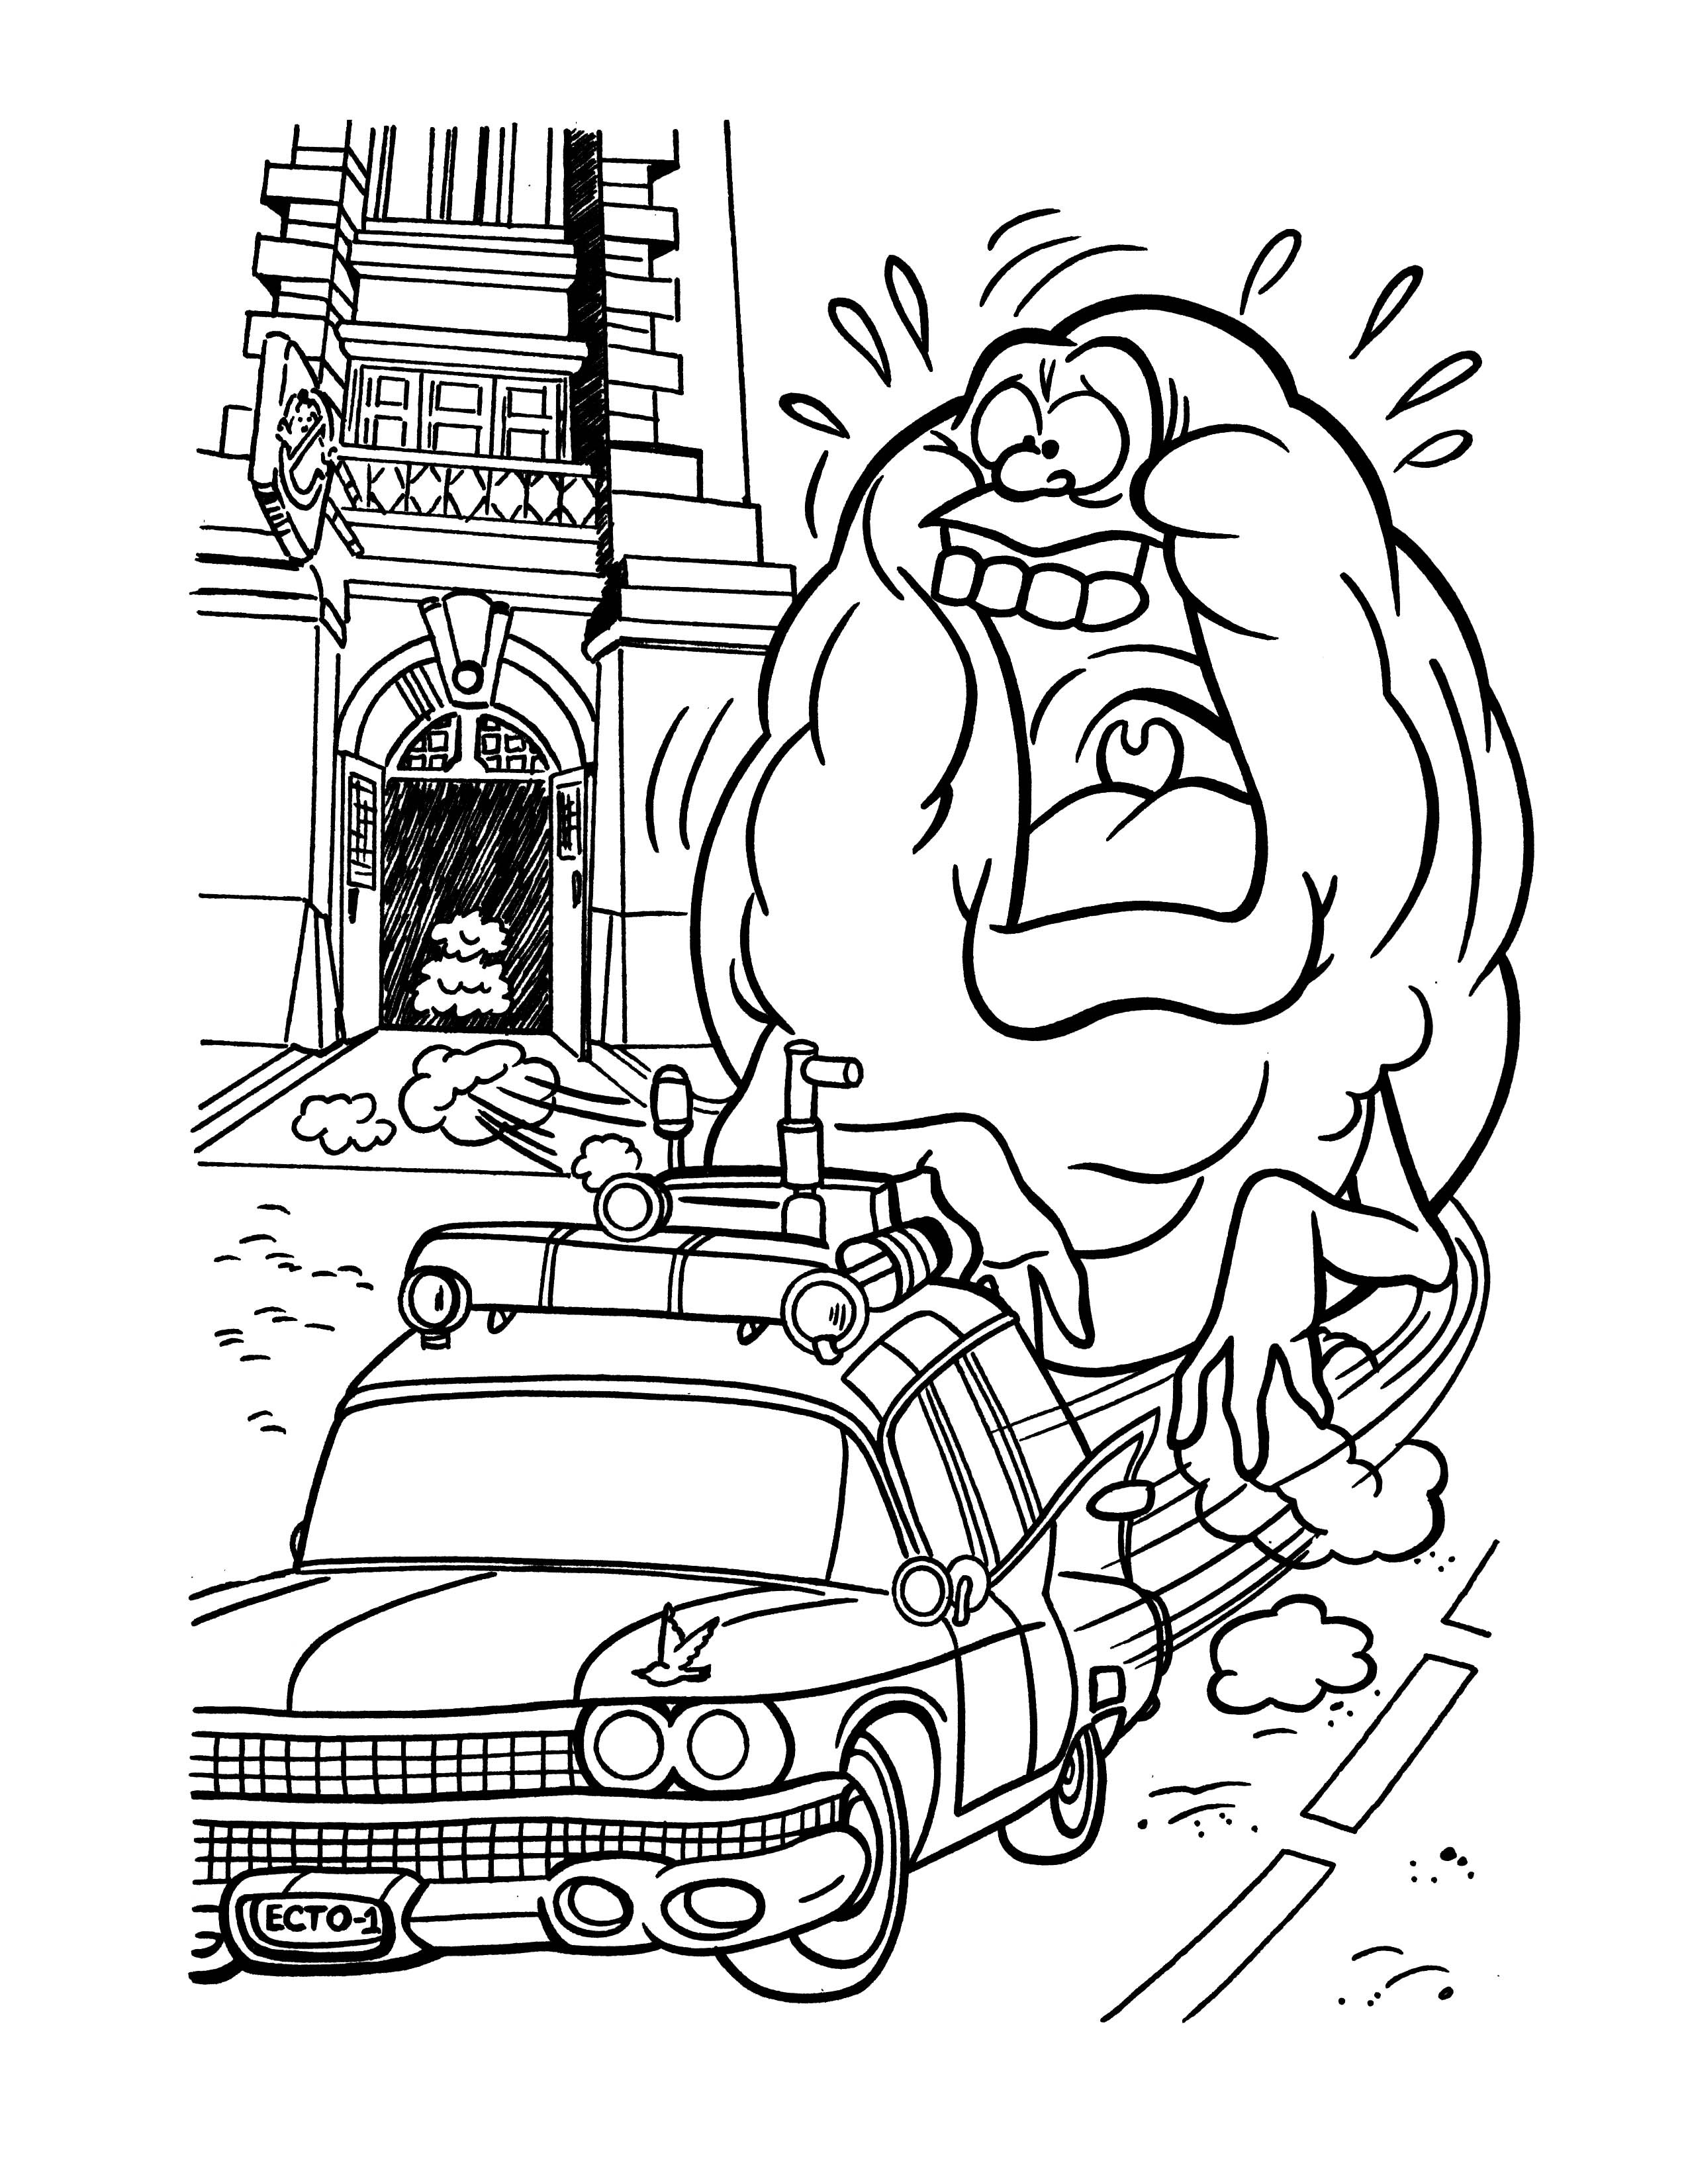 Ghostbuster Coloring Pages  Free Printable Ghostbusters Coloring Pages For Kids